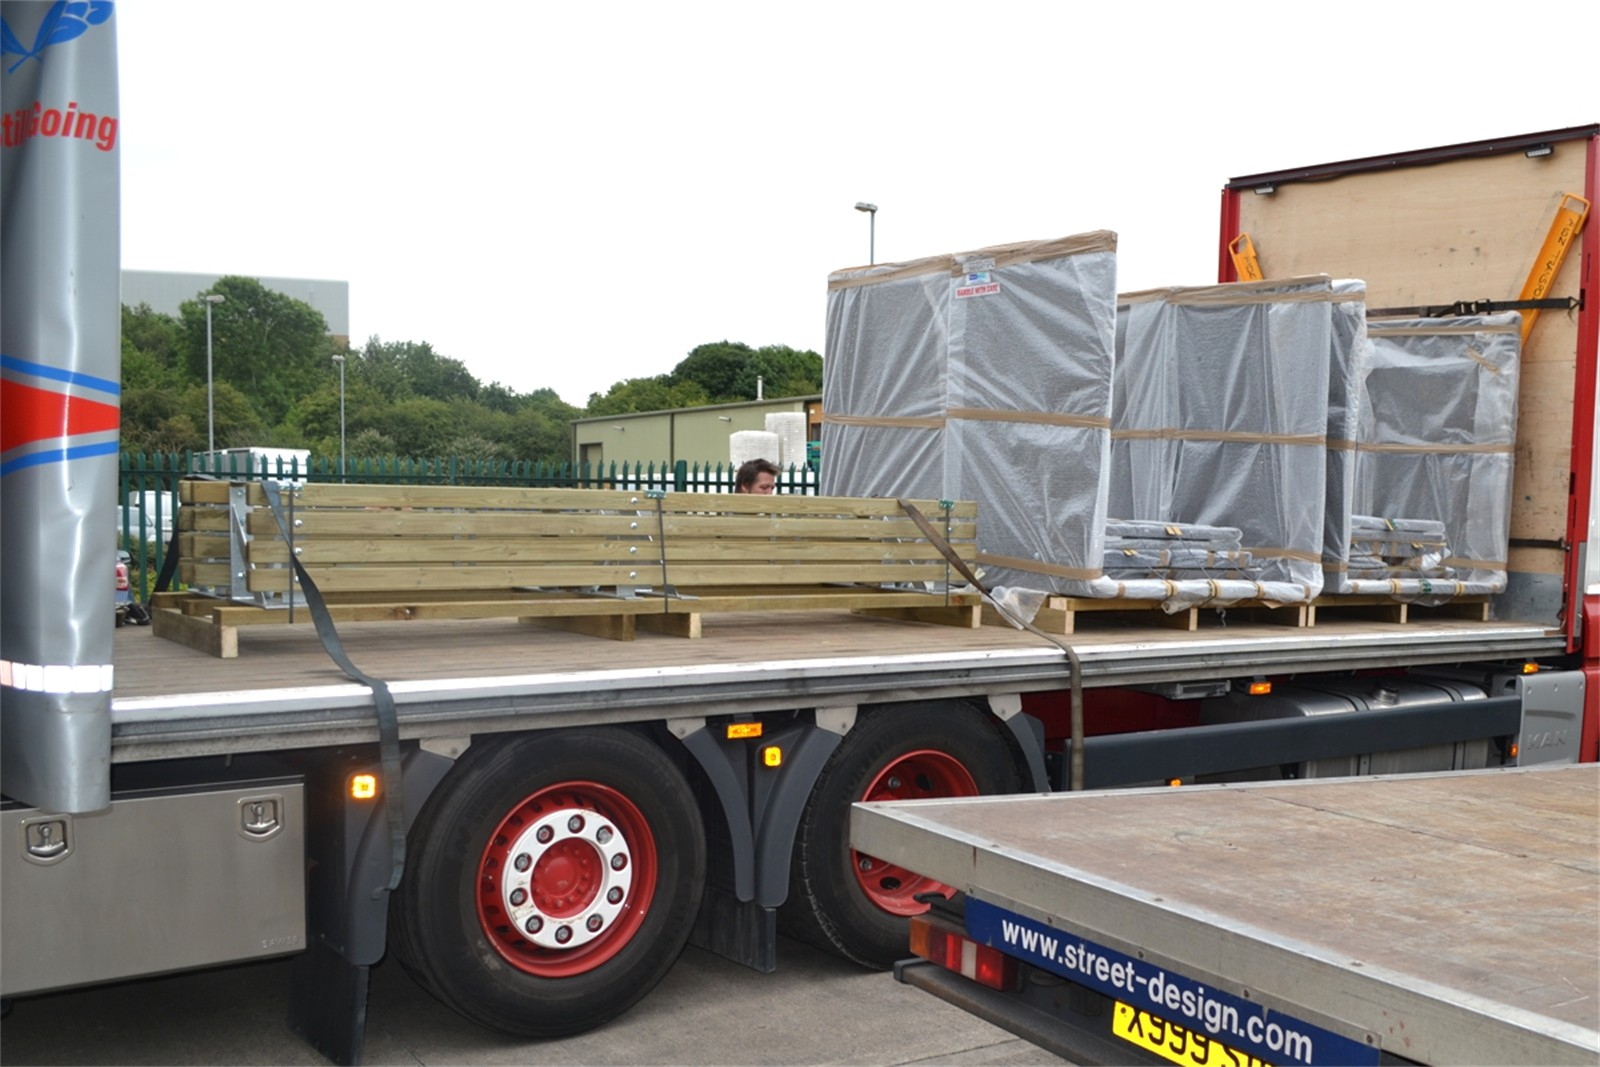 c121v06 - Planters and benches loaded for delivery to site